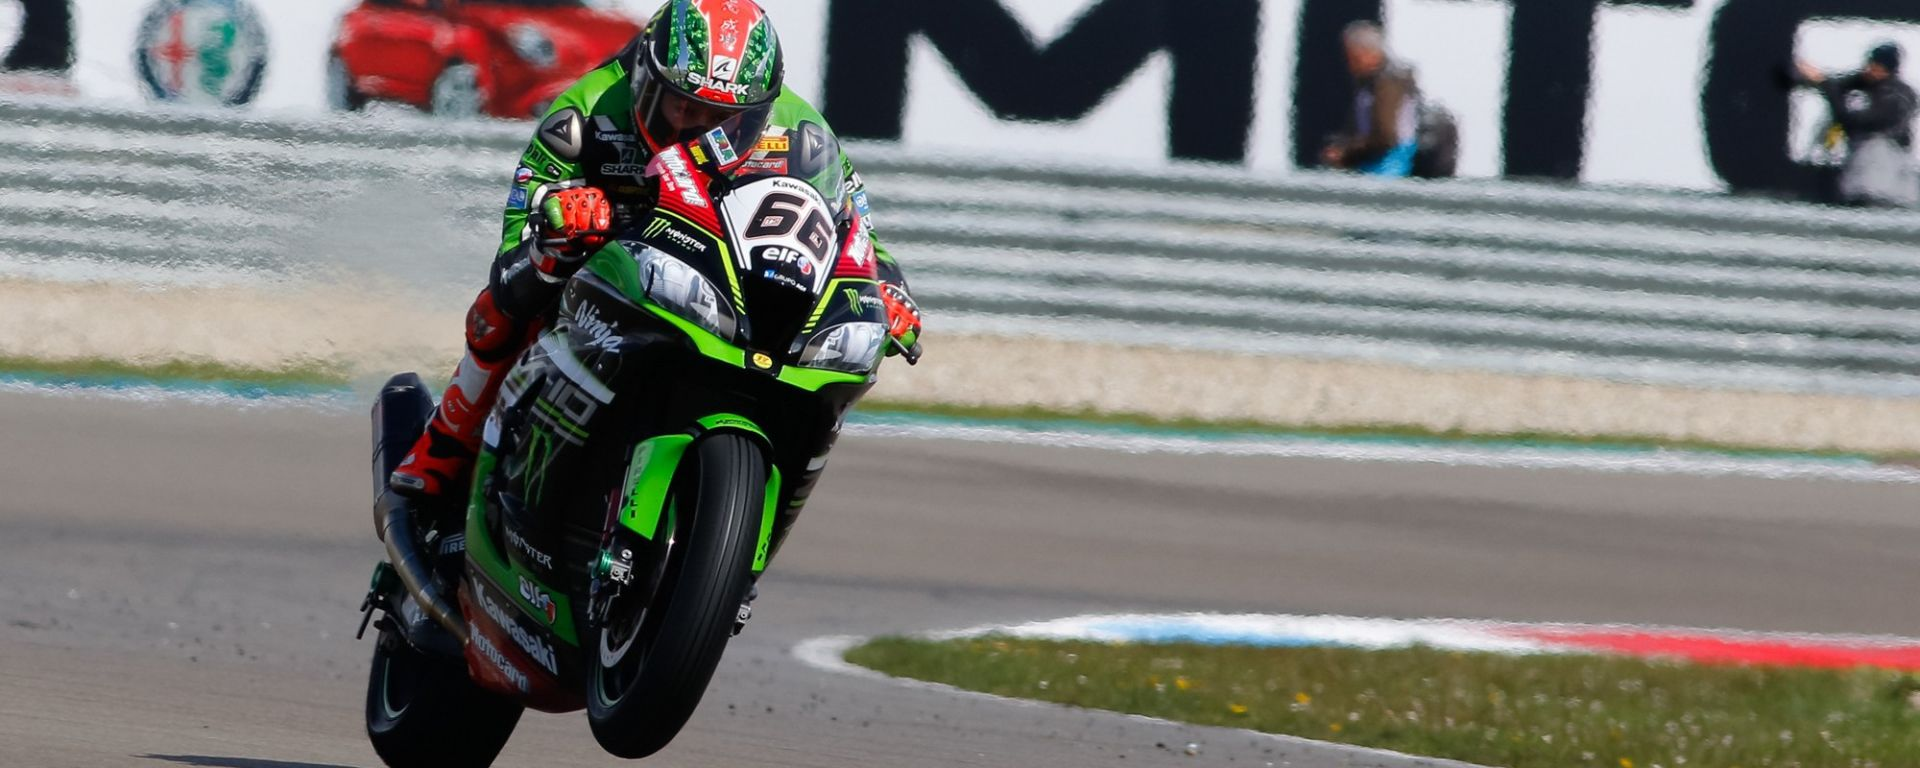 Superbike 2016 a Imola: così in TV